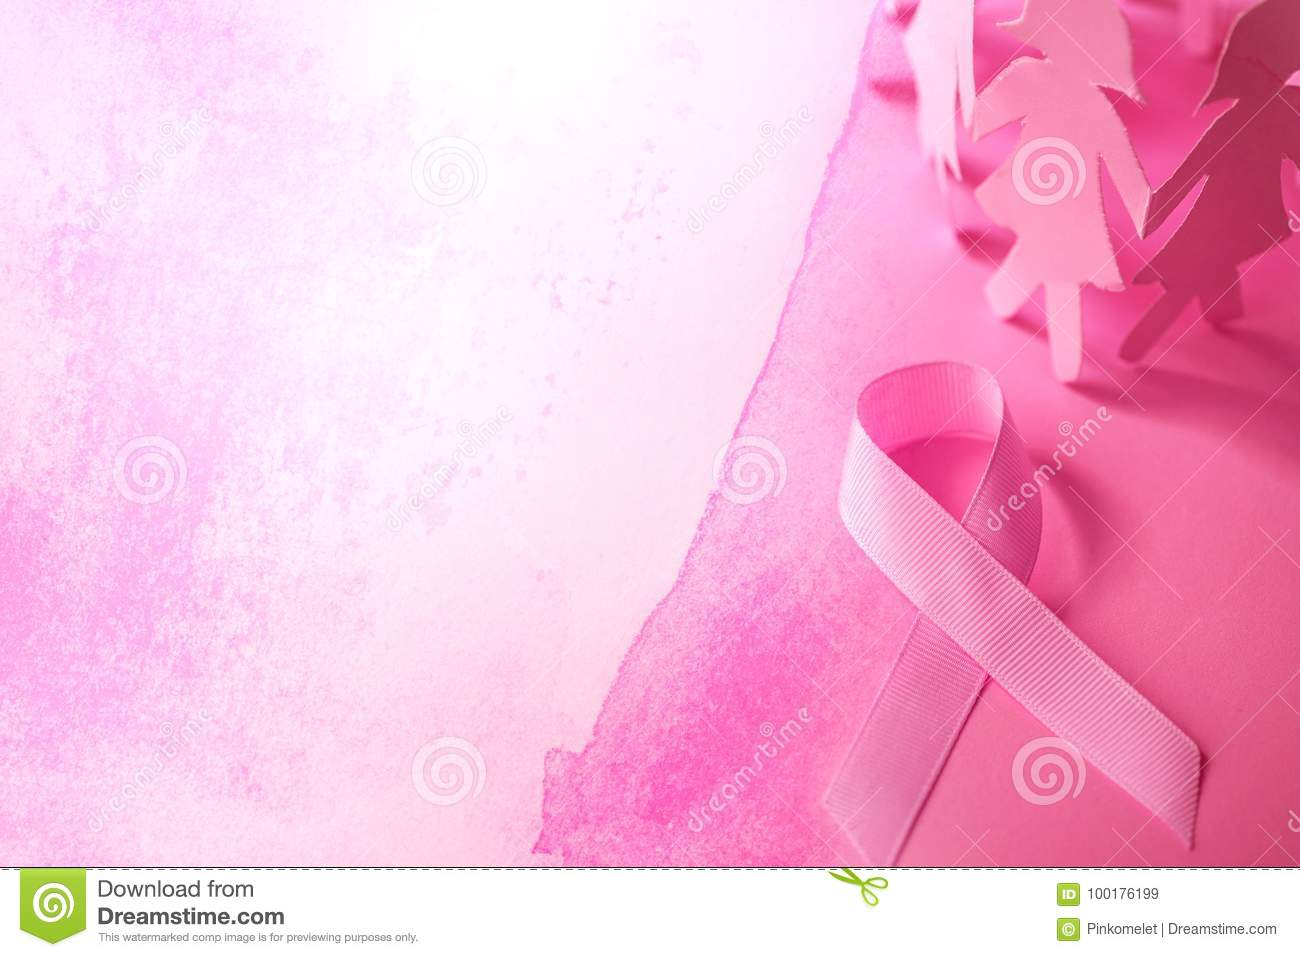 The Sweet pink ribbon shape with girl paper doll on pink background for Breast Cancer Awareness symbol to promote in october mo